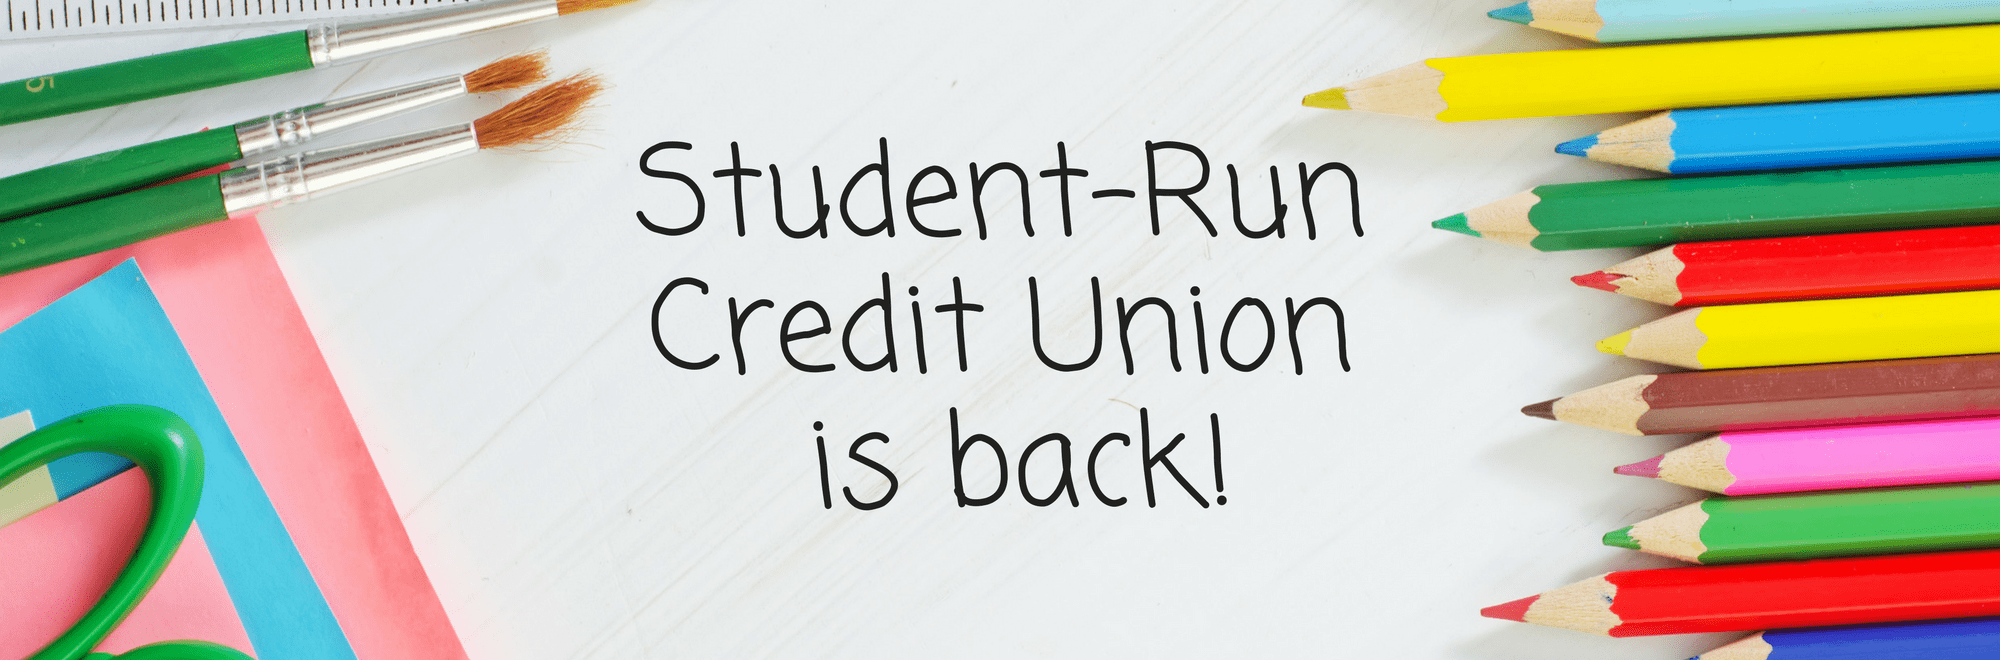 Student-Run Credit Union is back!